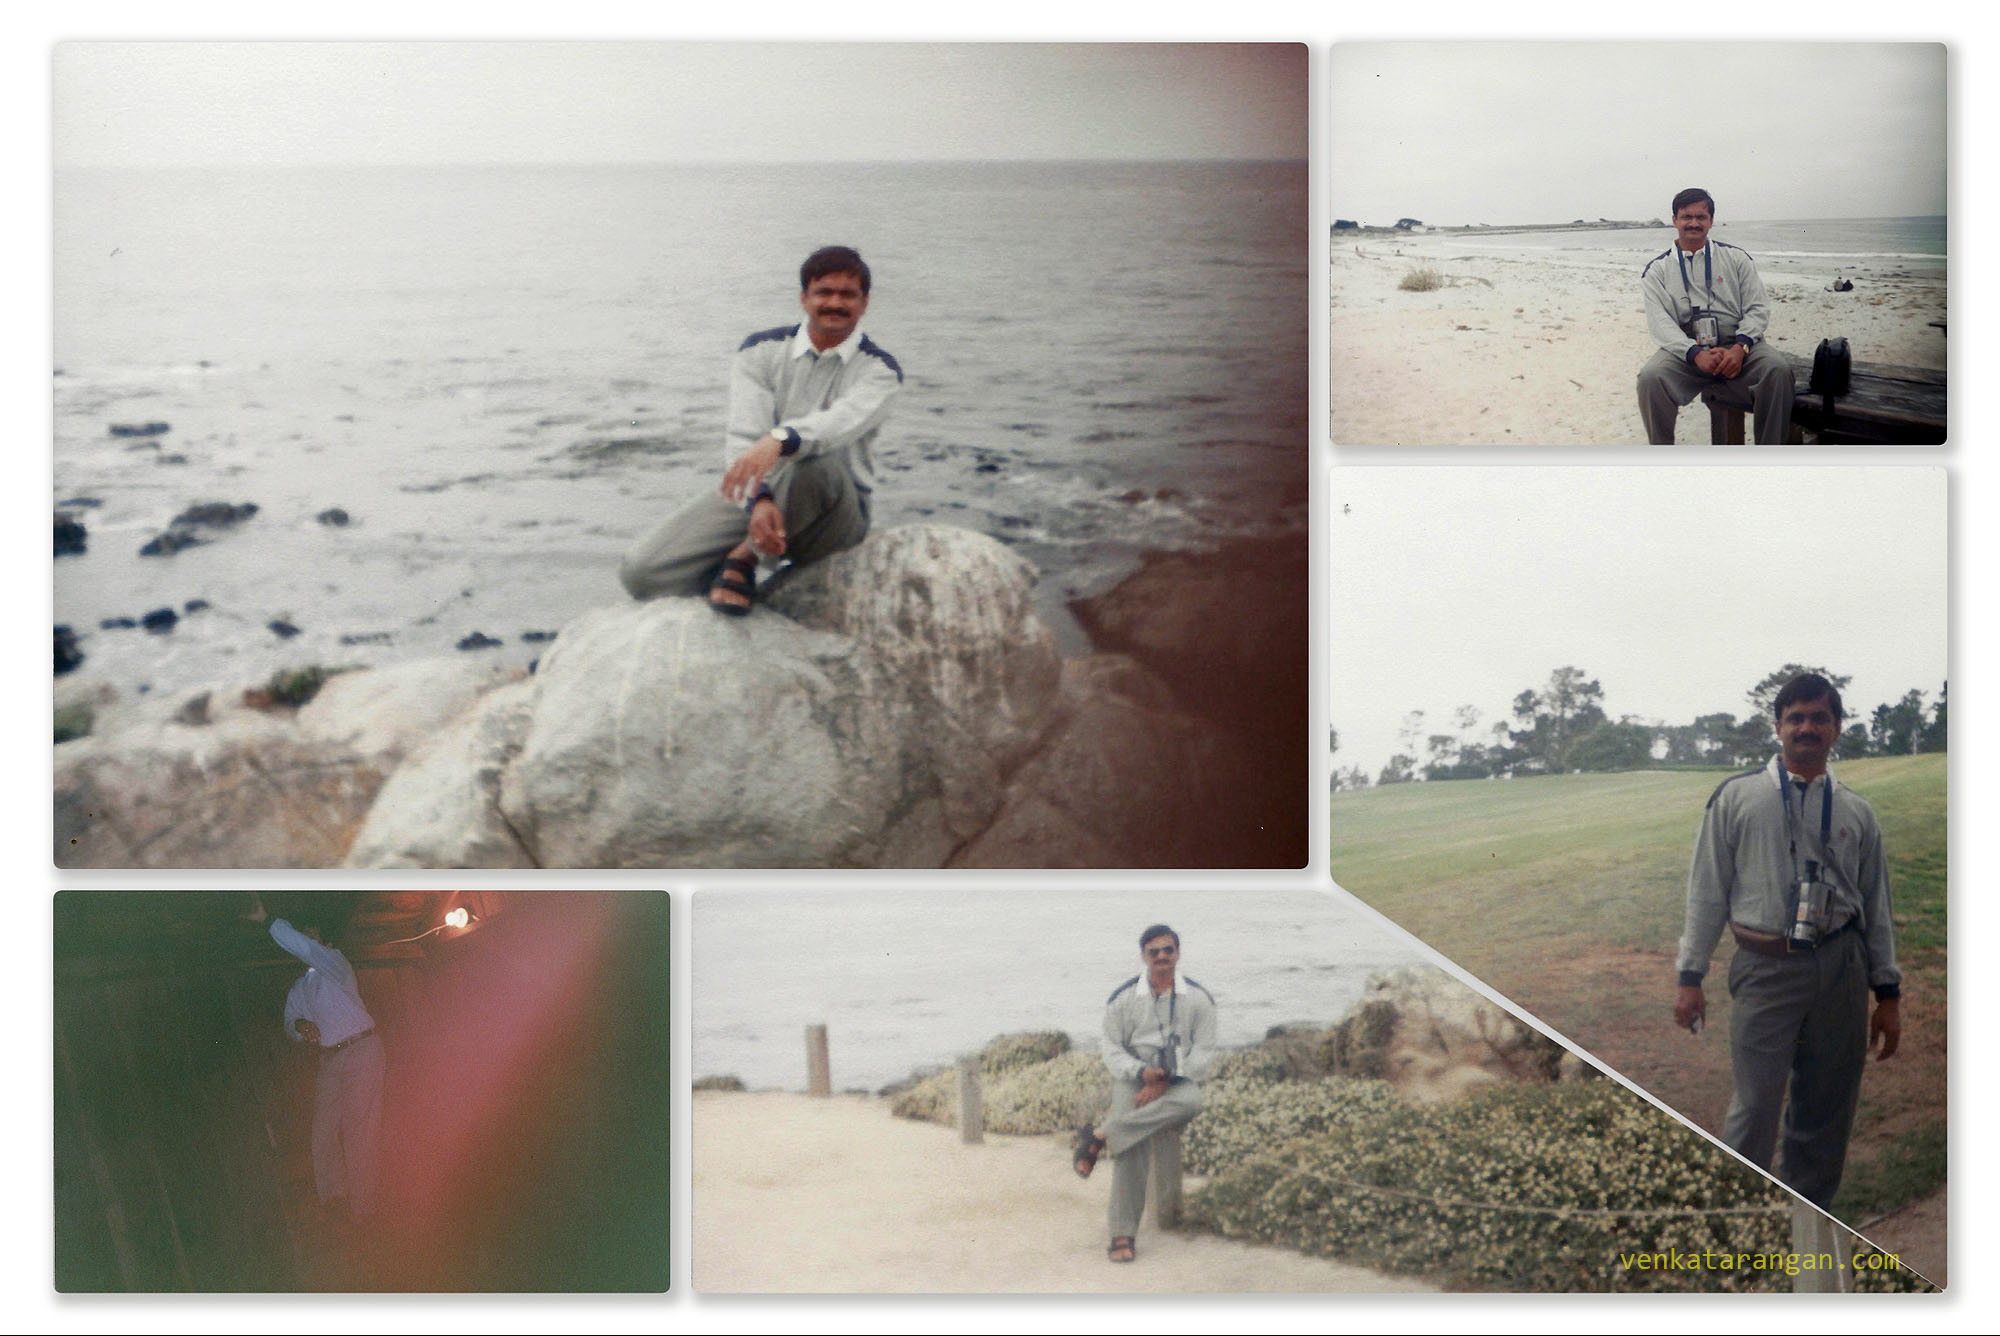 In 1999 - The 17-mile drive near Pebble Beach. (Bottom Left) An overly exposed picture of me in the Mystery Spot, Santa Cruz, CA.